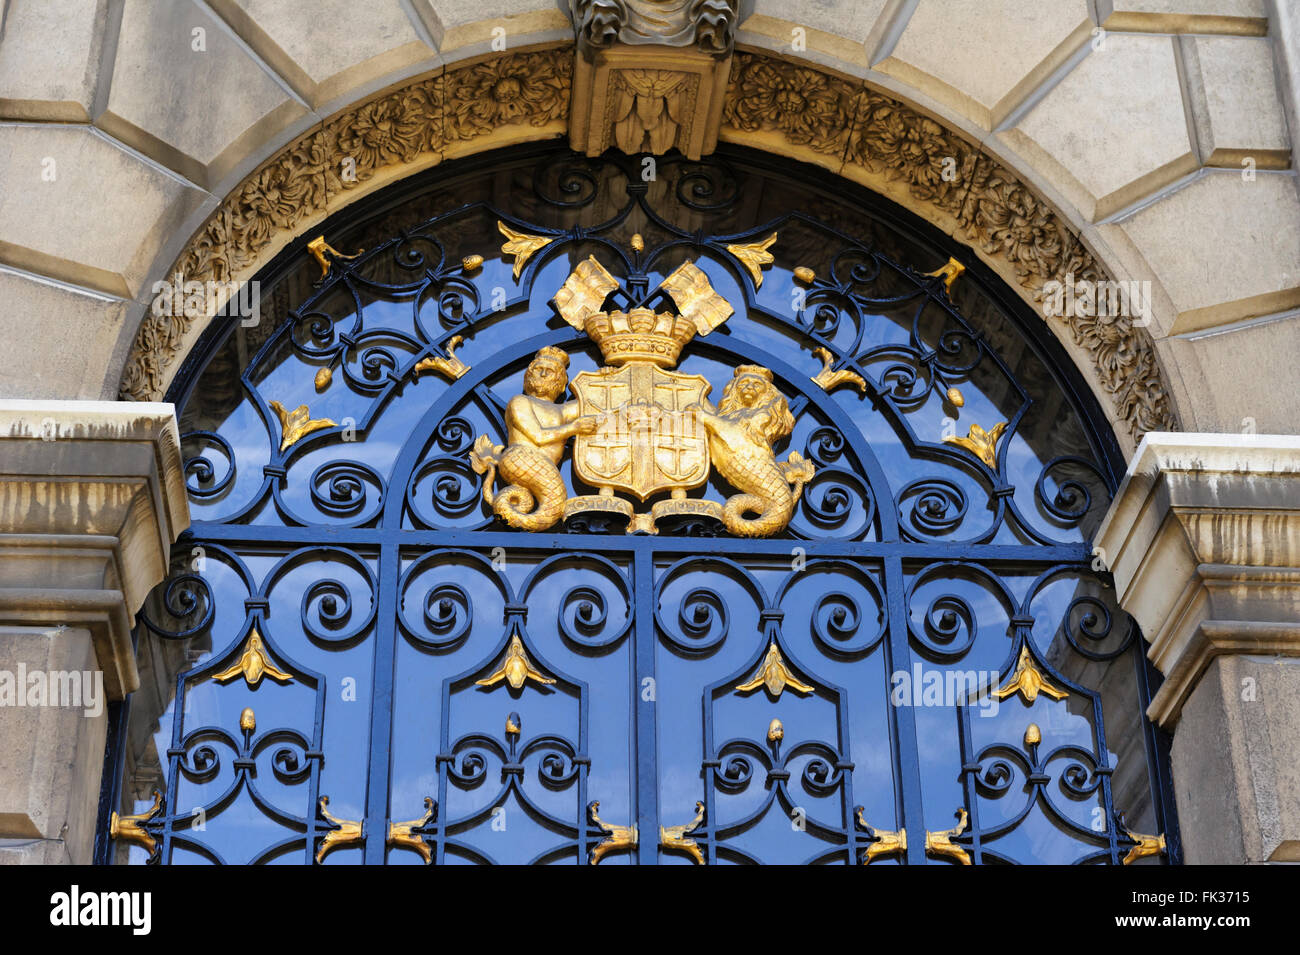 Symbolic Coat of Arms above the doorway of one of the entrances to the historic Old Royal Naval College, London, Stock Photo